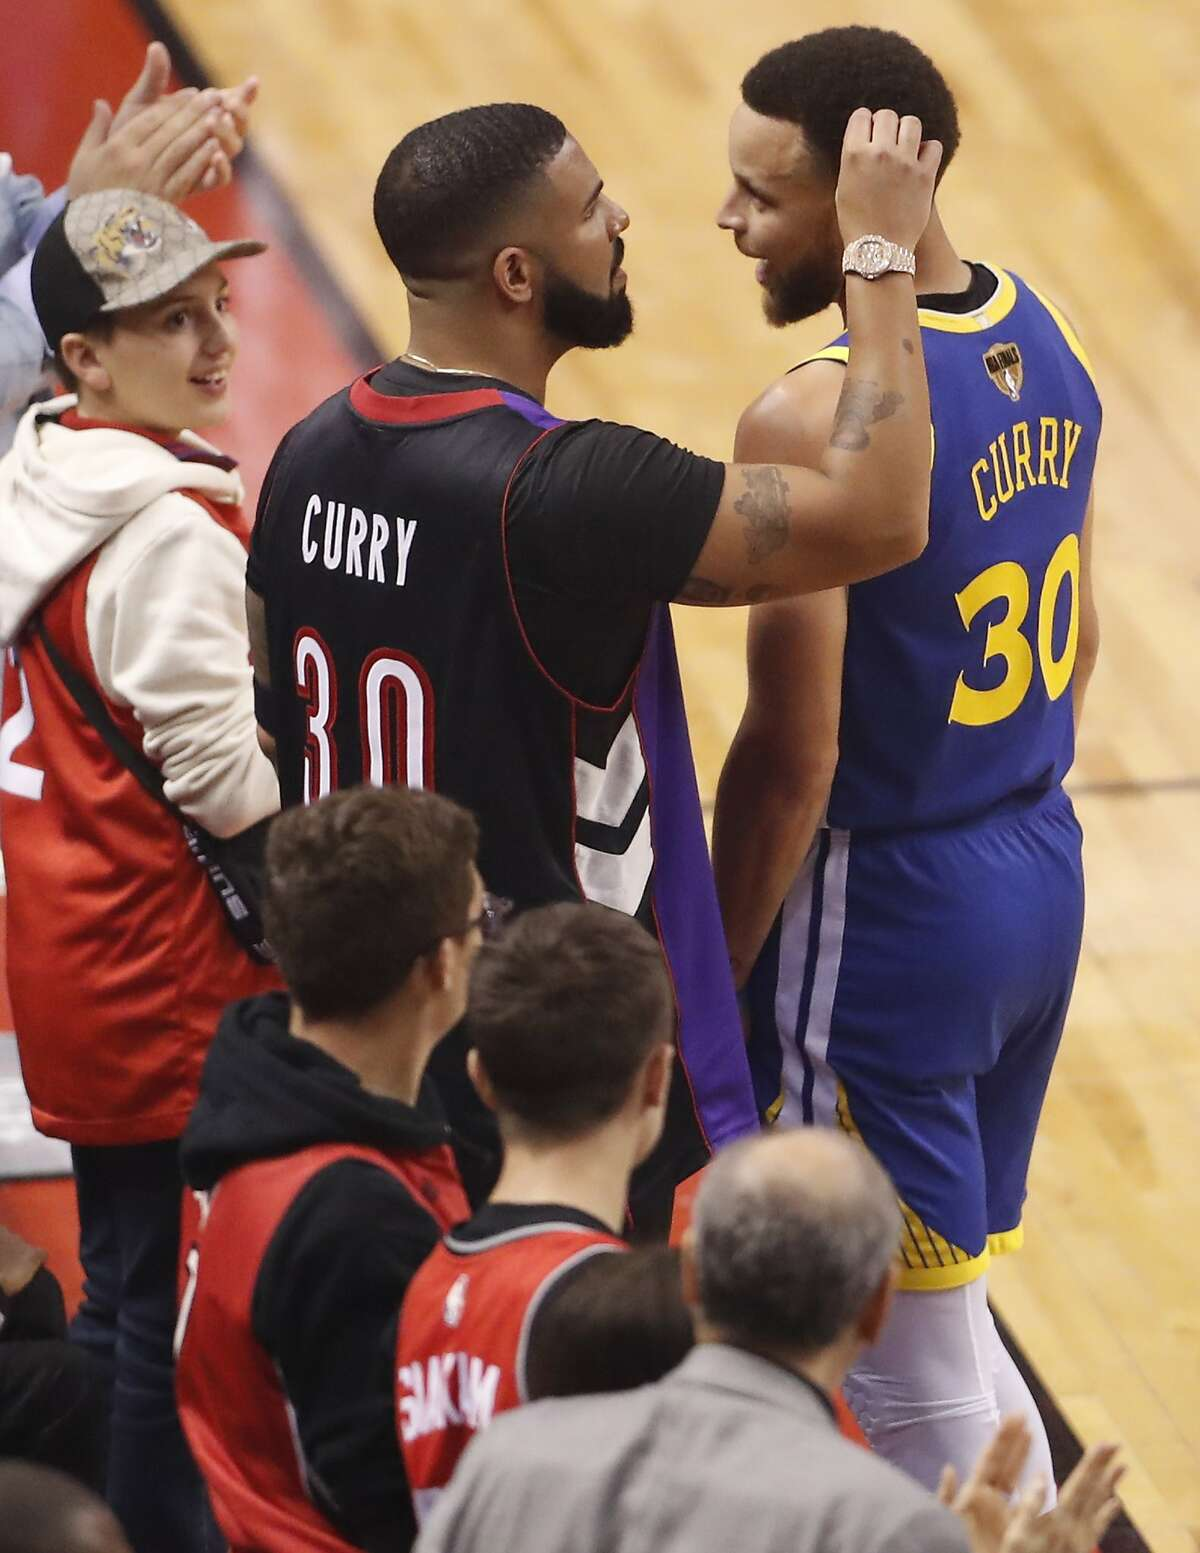 Drake and Golden State Warriors' Stephen Curry exchange pleasantries during Toronto Raptors' 118-109 win in NBA Finals' Game 1 at ScotiaBank Arena in Toronto, Ontario, Canada, on Thursday, May 30, 2019.